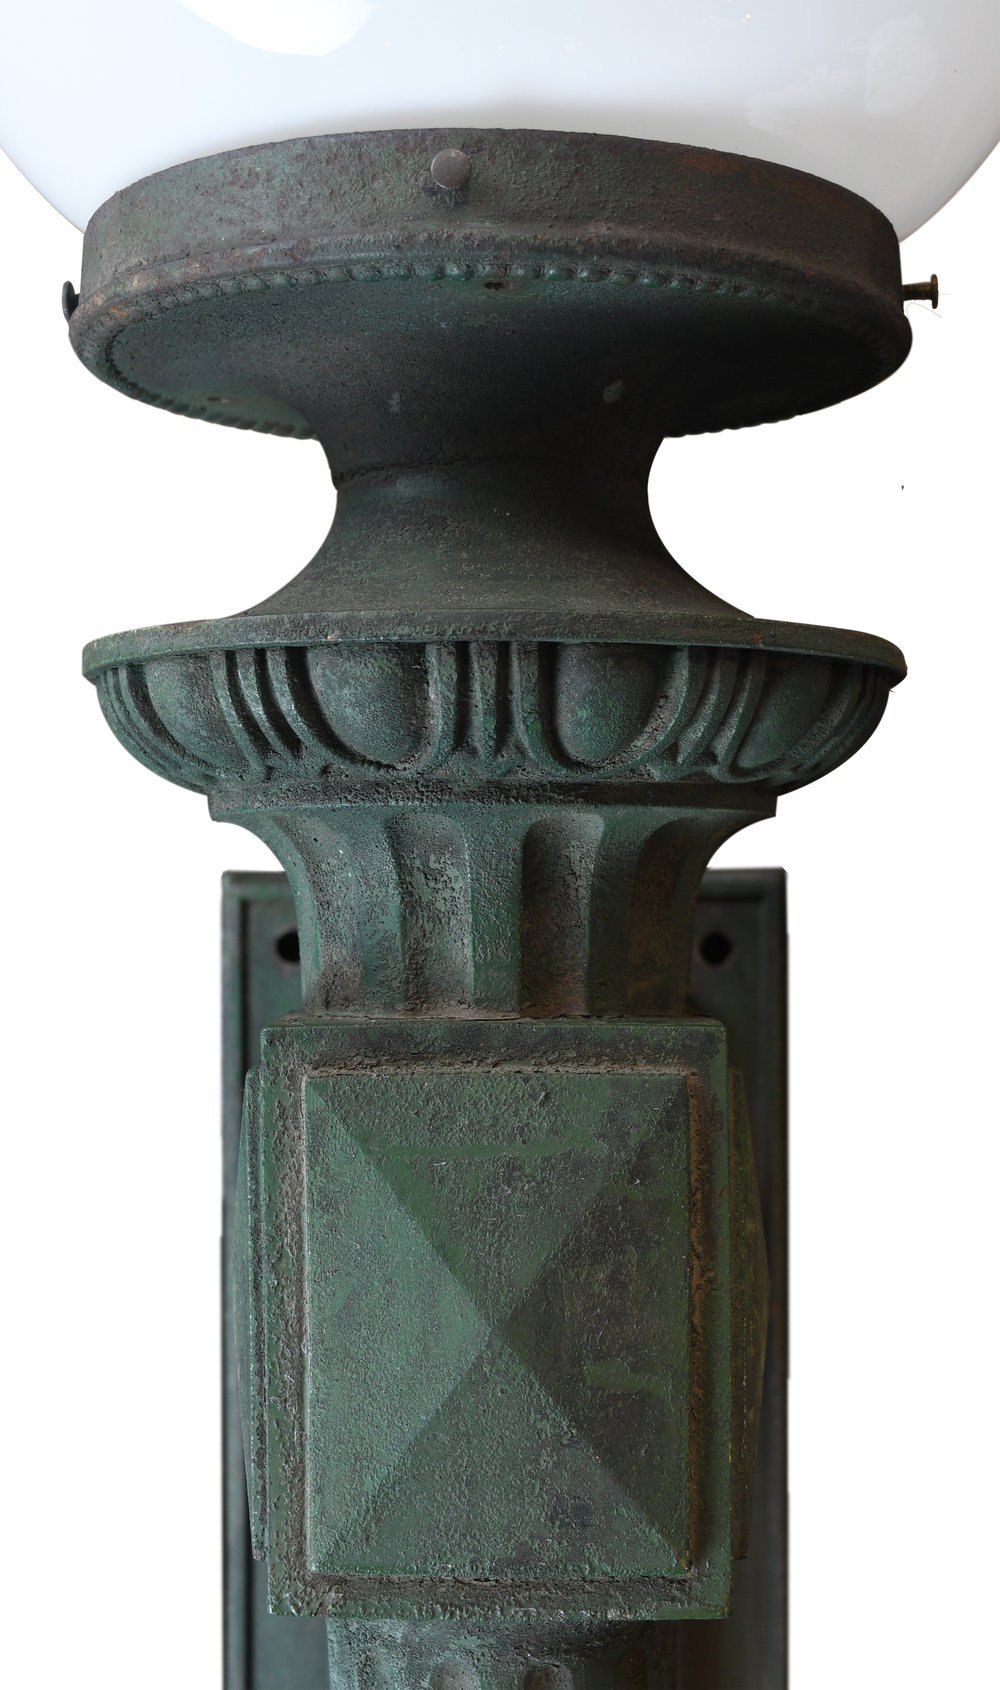 47584-bronze-cast-federal-exterior-sconce-3.jpg